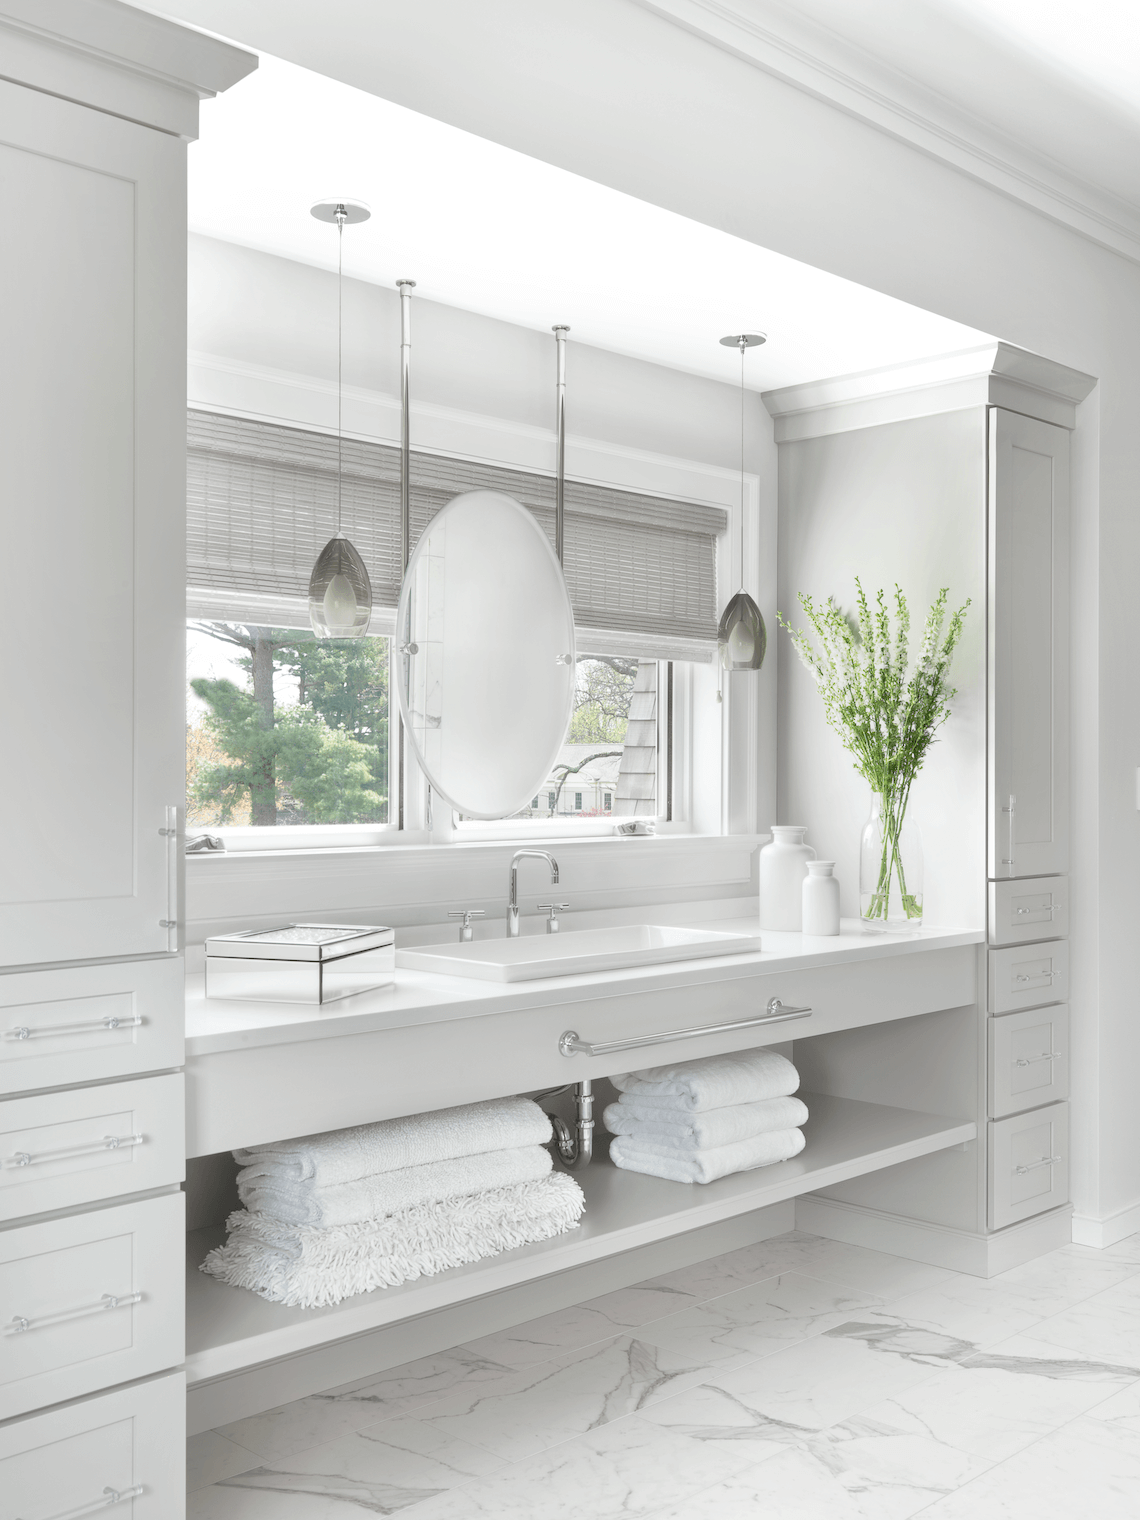 Transitional Bathroom Design - Beck/Allen Cabinetry